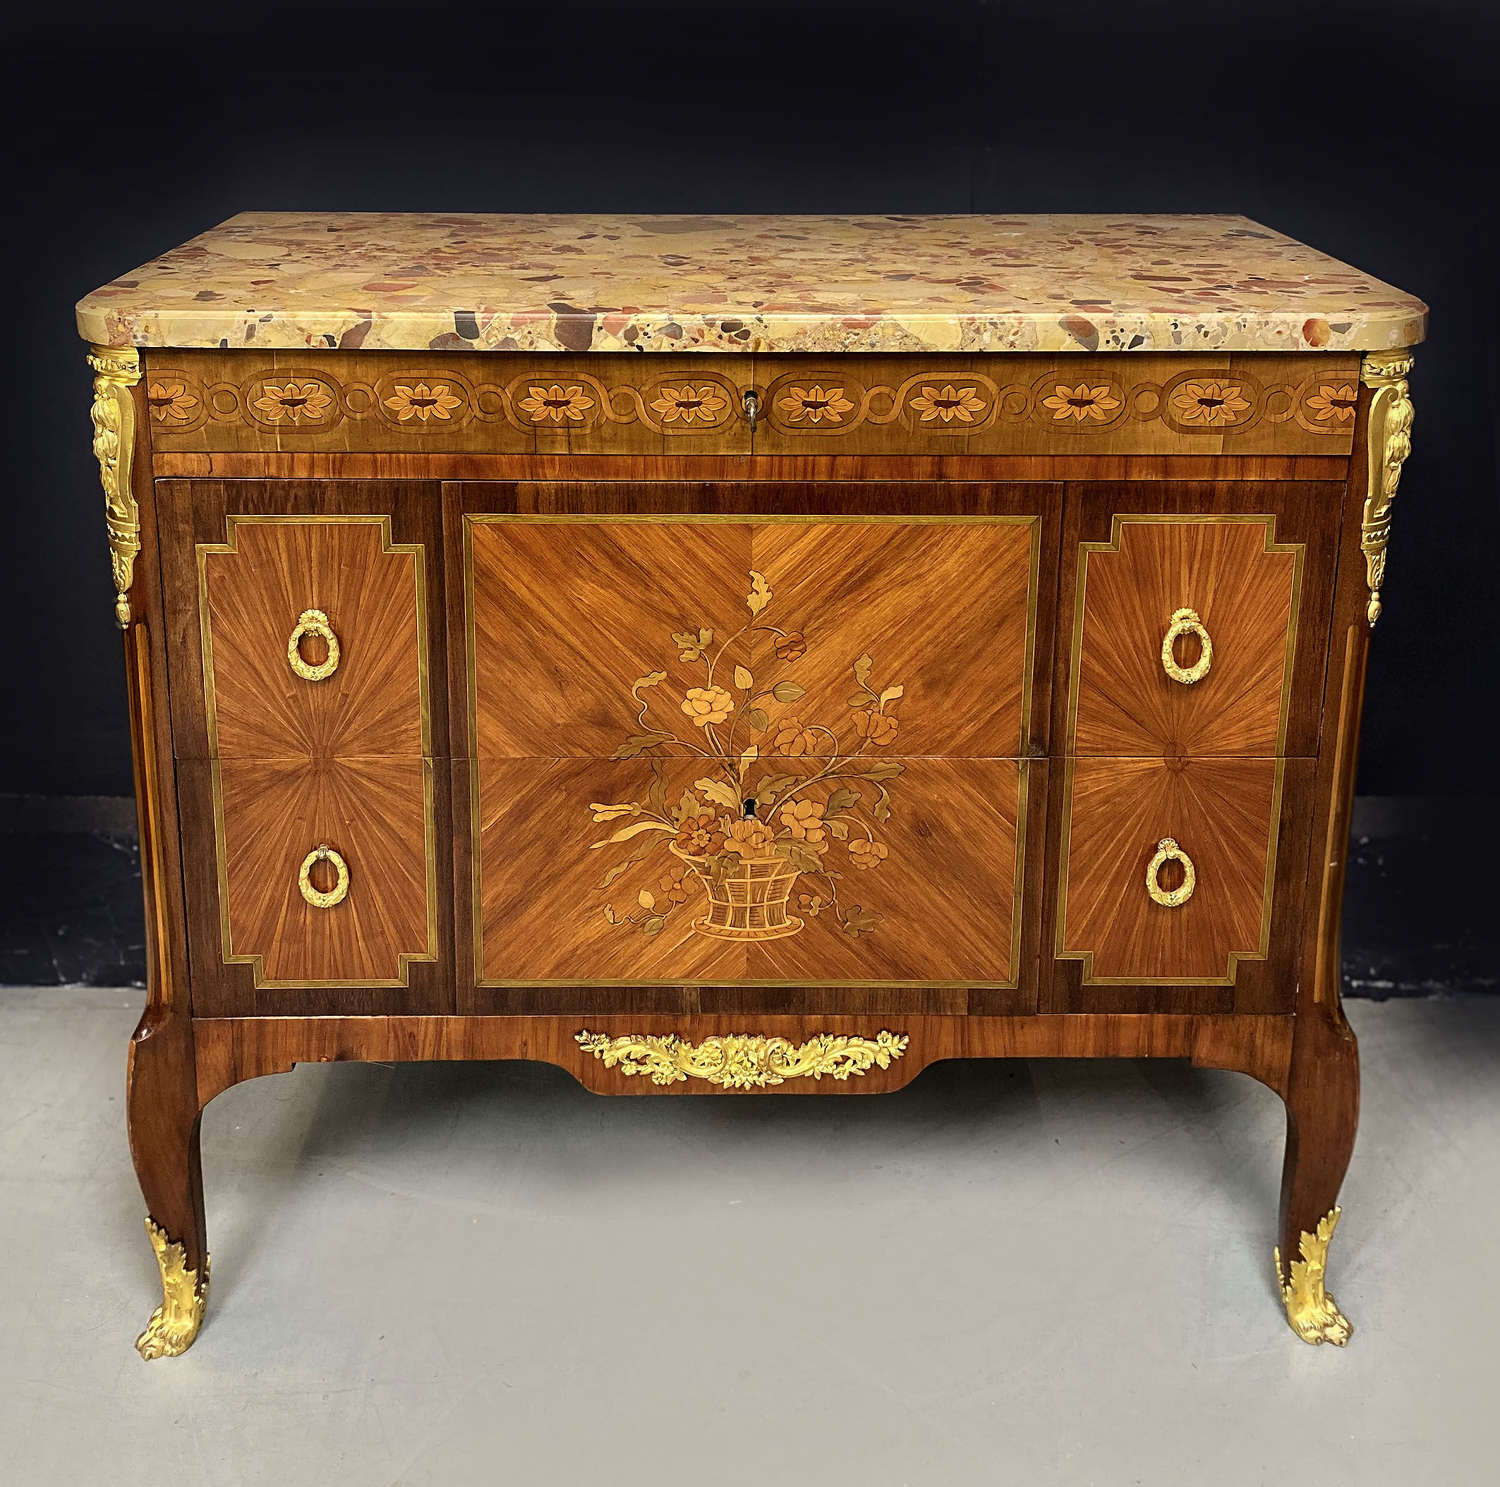 Mid 19th Century Transitional style inlaid commode